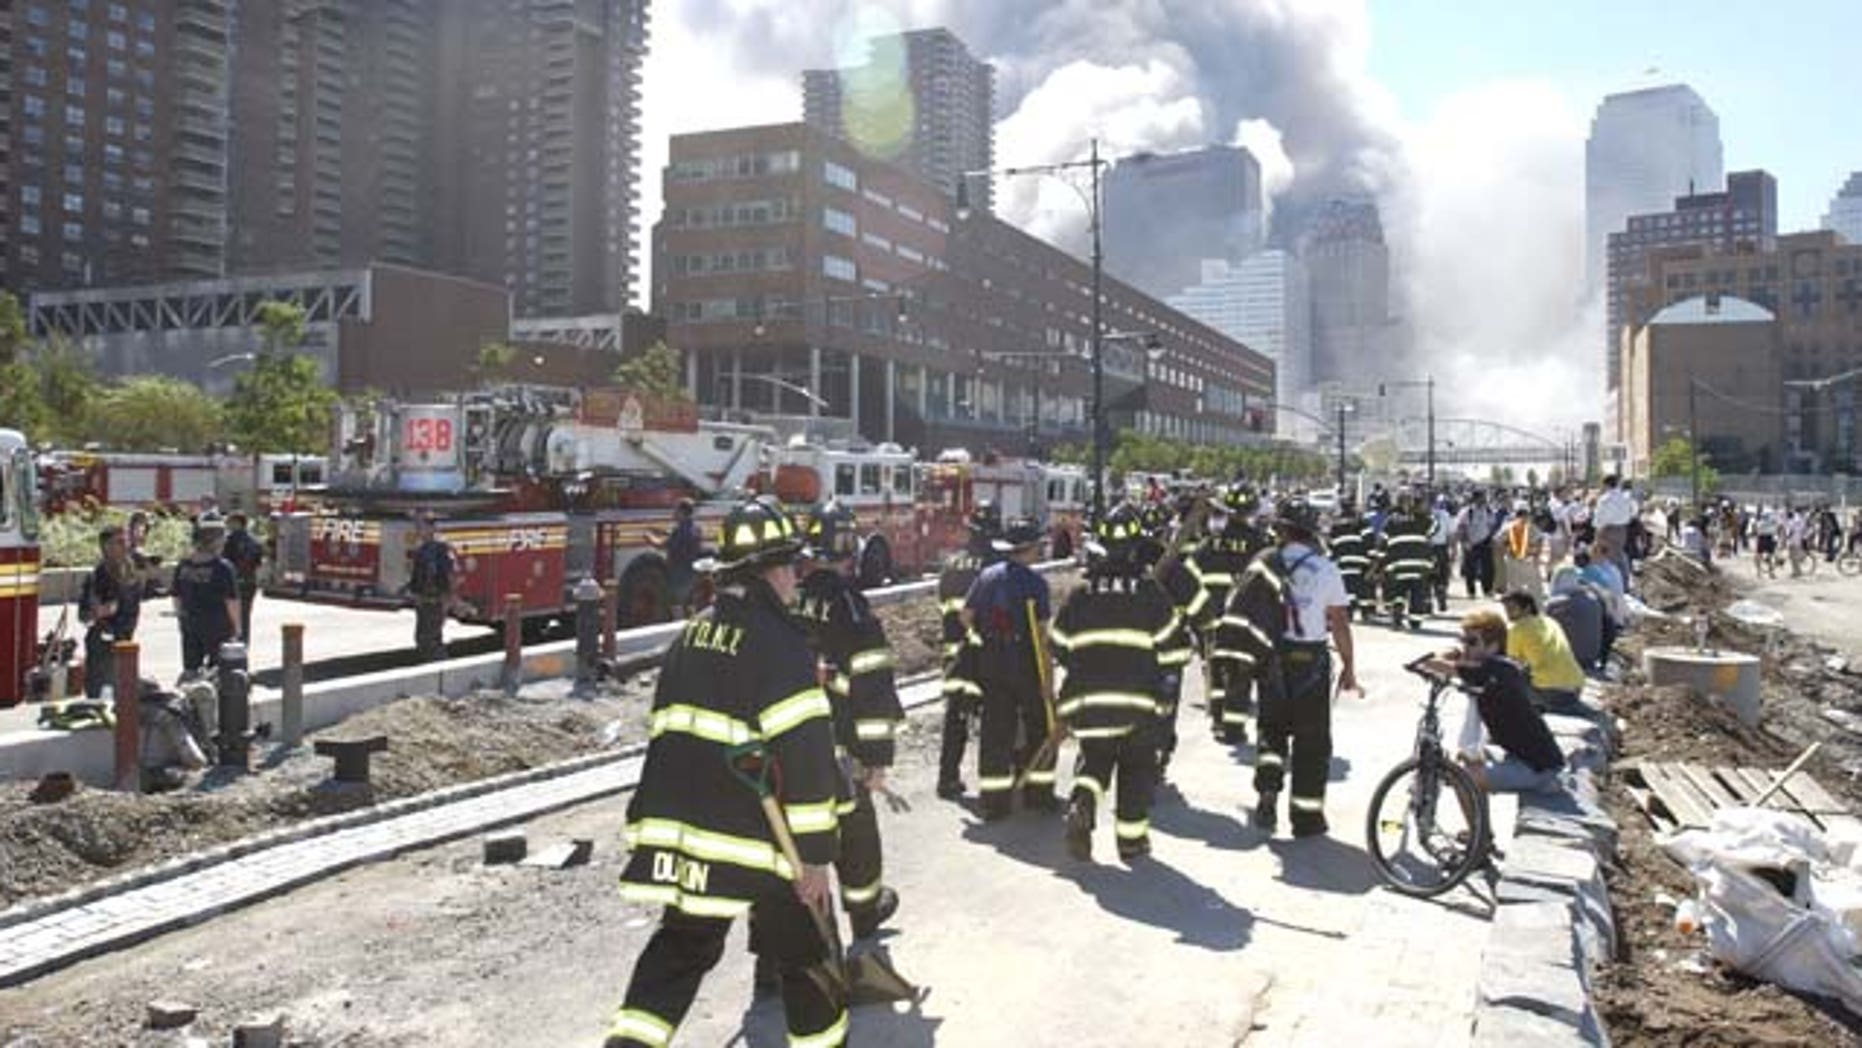 Fireman heading south on the West Side Highway towards the remains of the World Trade Center where smoke continued hours after the colapse. Streets of lower Manhattan with fireman, police, and rescue crews after the colapse of the World Trade Center after being hit by two airplanes on September 11, 2001.  photo by Gabe Palacio/ImageDirect